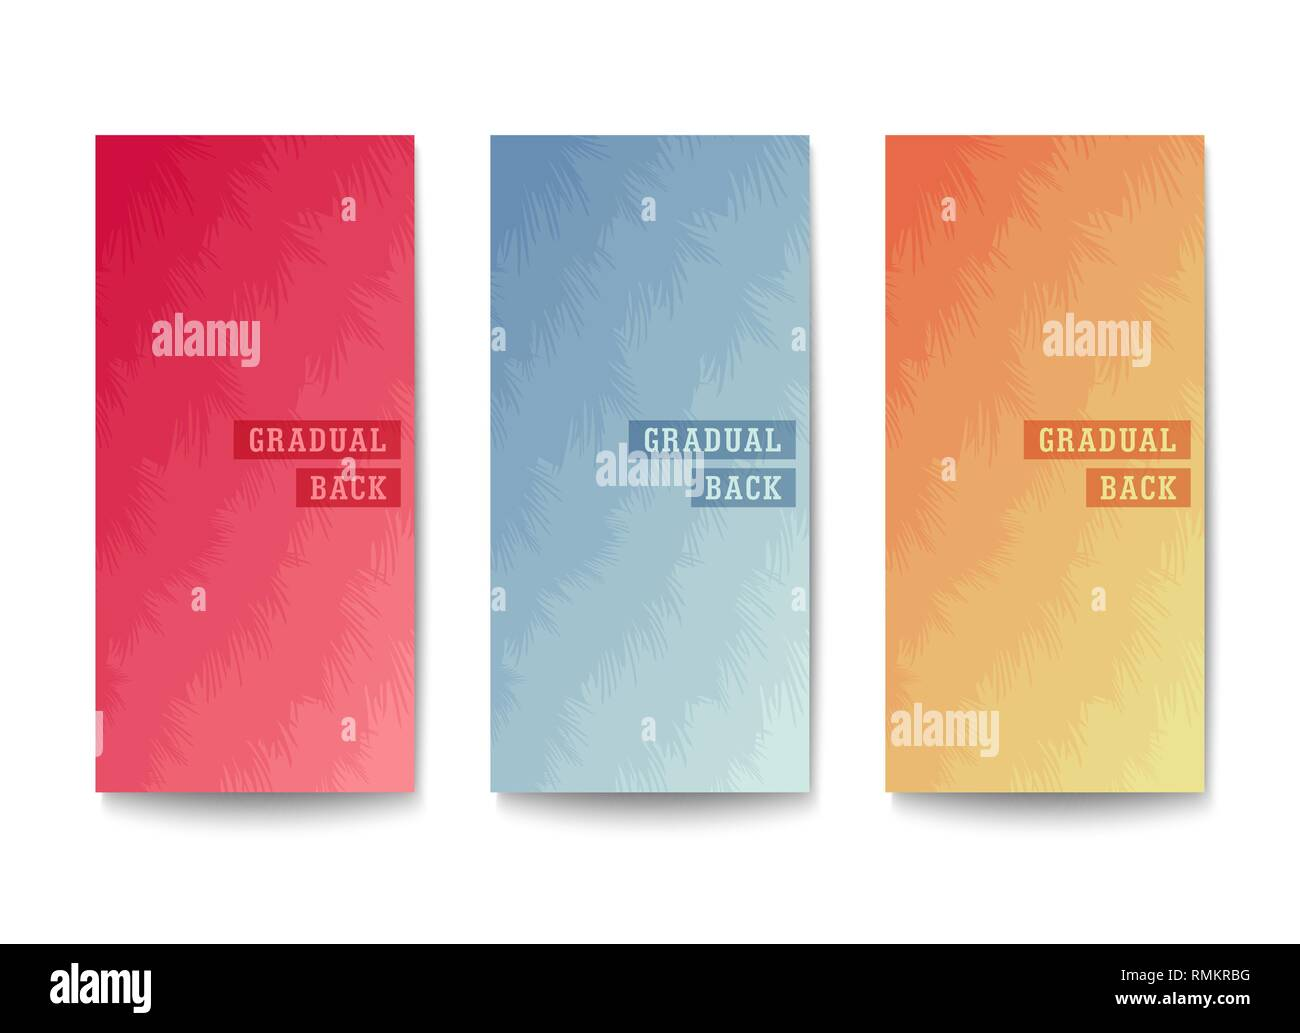 Layered backgrounds design. Layers of different tones with an uneven edge. Muted colors gradation. Vector template - Stock Image